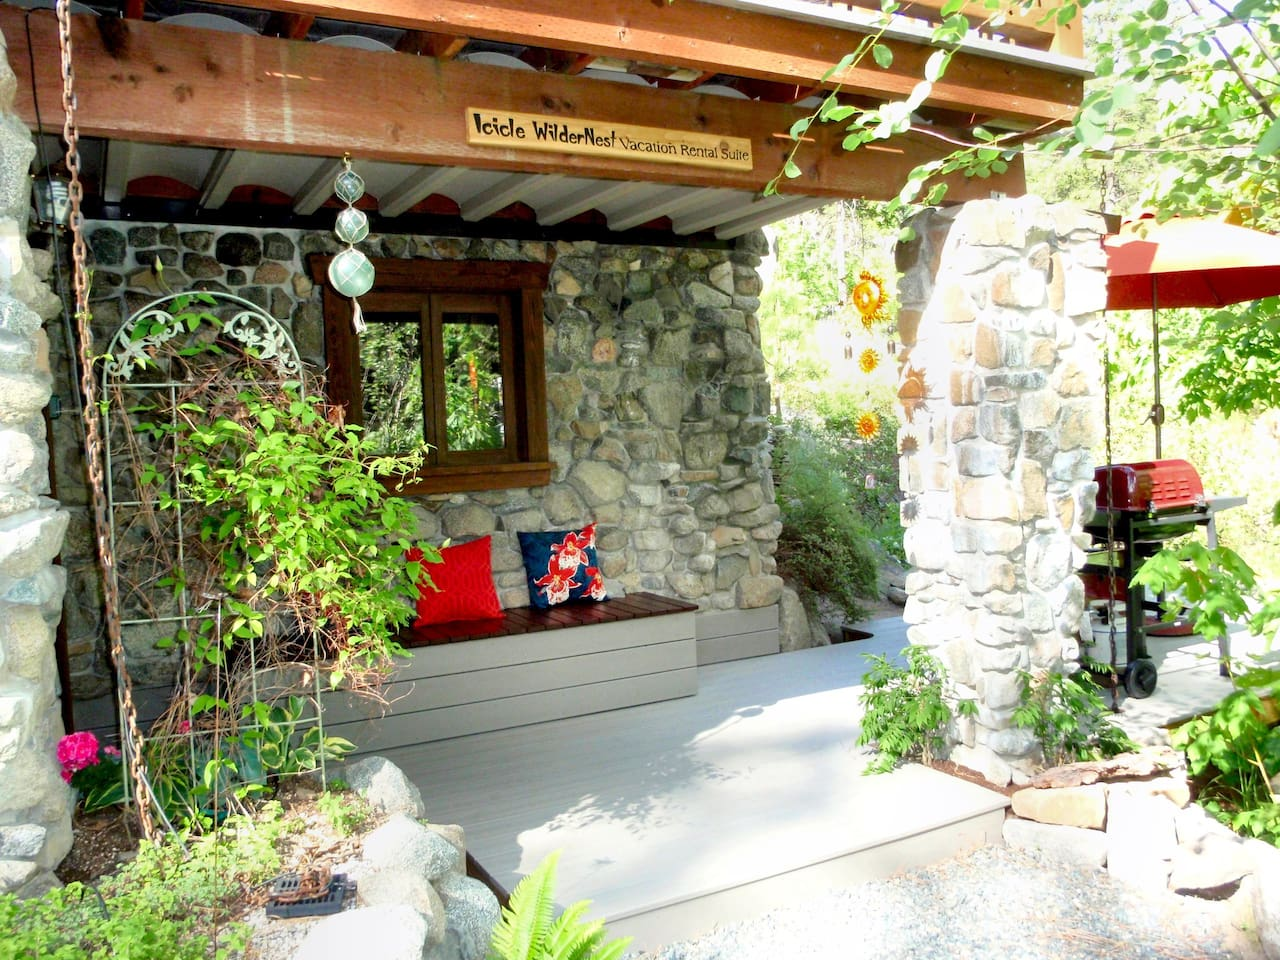 Icicle WilderNest Suite Entrance with Private Deck